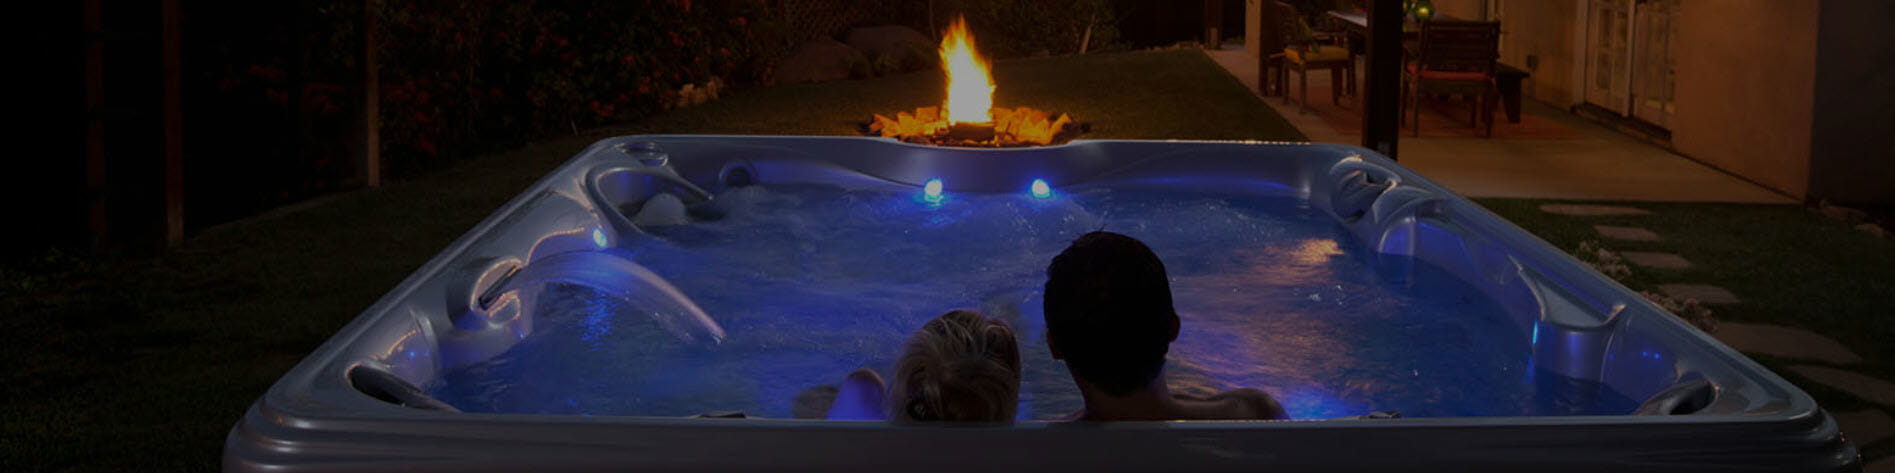 How to Use a Home Spa to Get the Sleep You Deserve, Hot Tub Sale Janesville